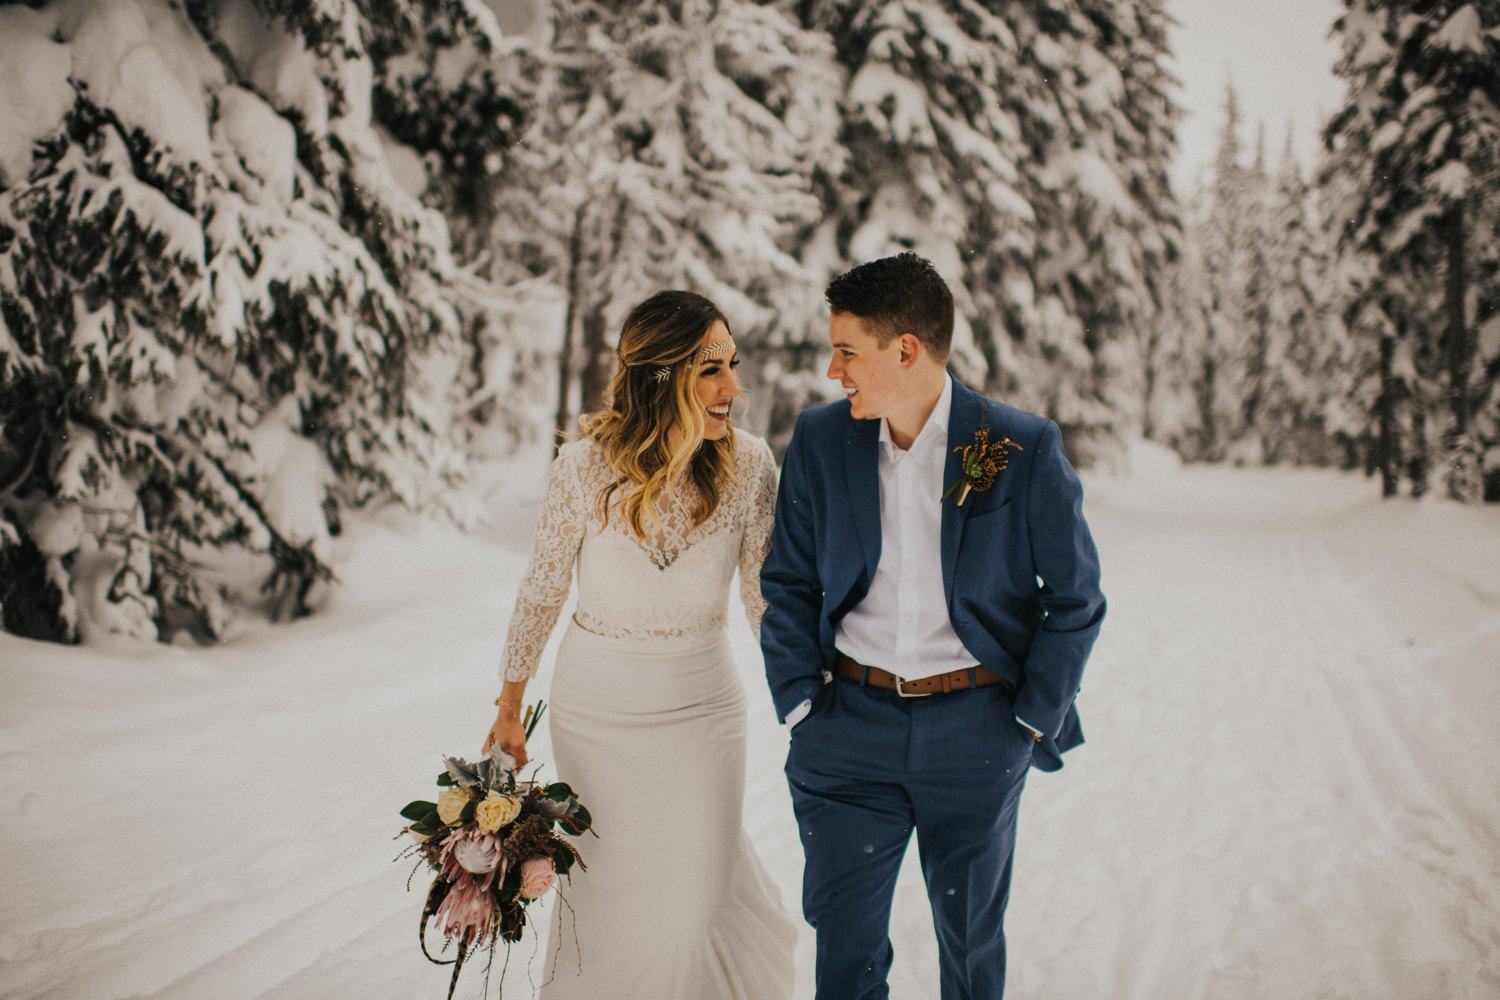 Okanagan Winter Elopement - Joelsview Photography_0032